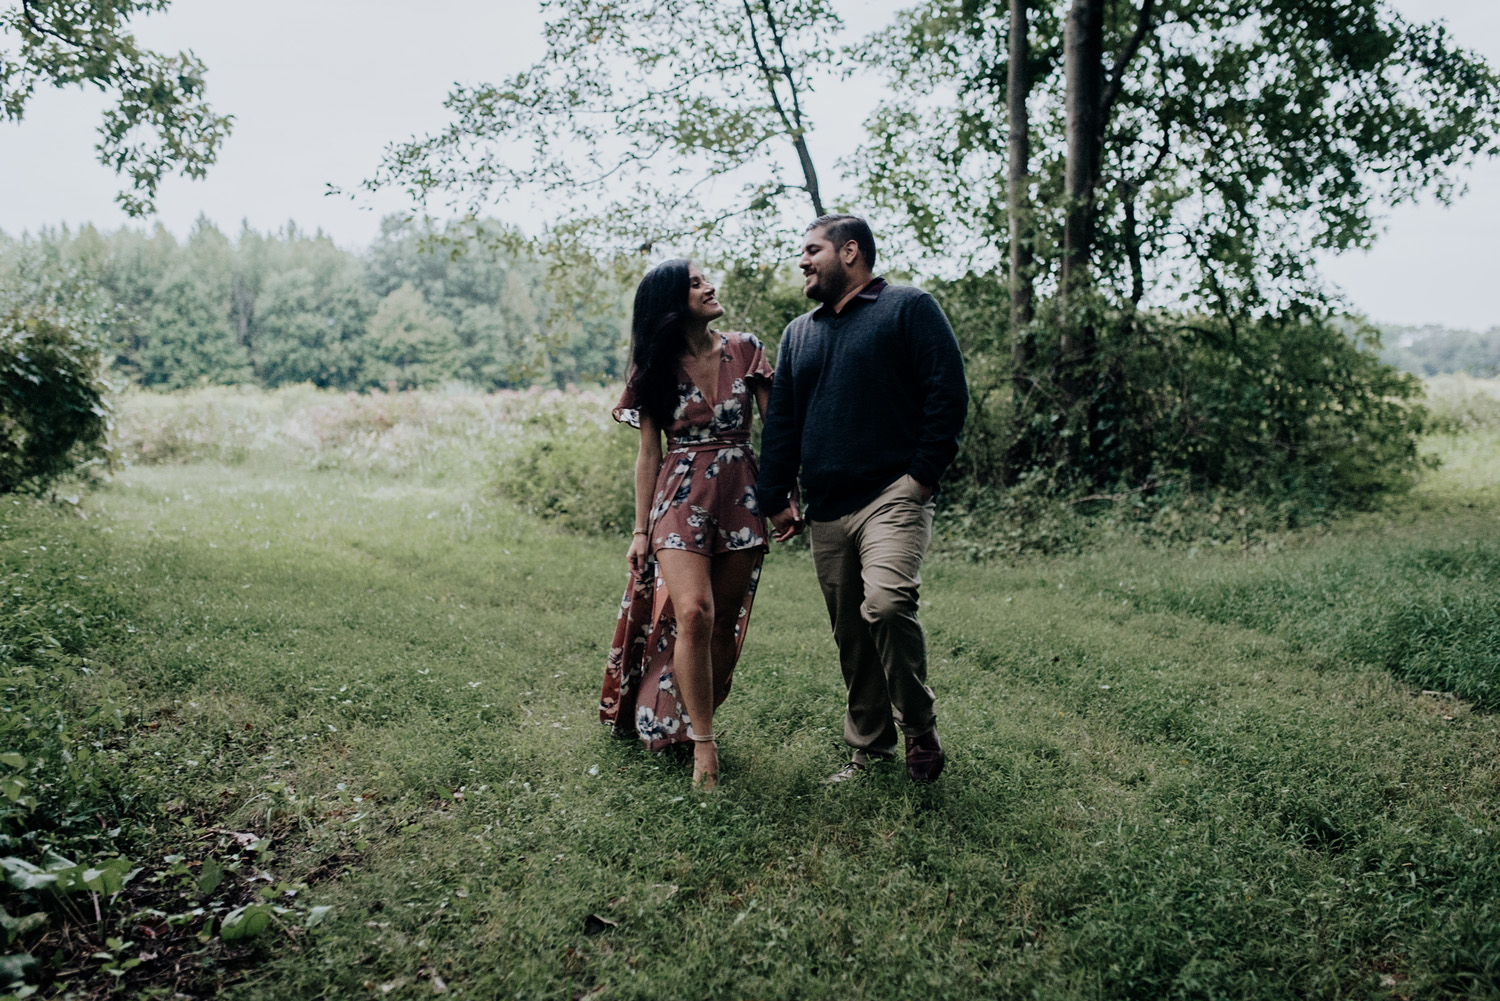 assunpink-lake-wildlife-refuge-engagement-photos-nj-wedding-photographer-new-jersey-philadelphia-maryland-baltimore-portland-east-coast-kylewillisphoto-kyle-willis